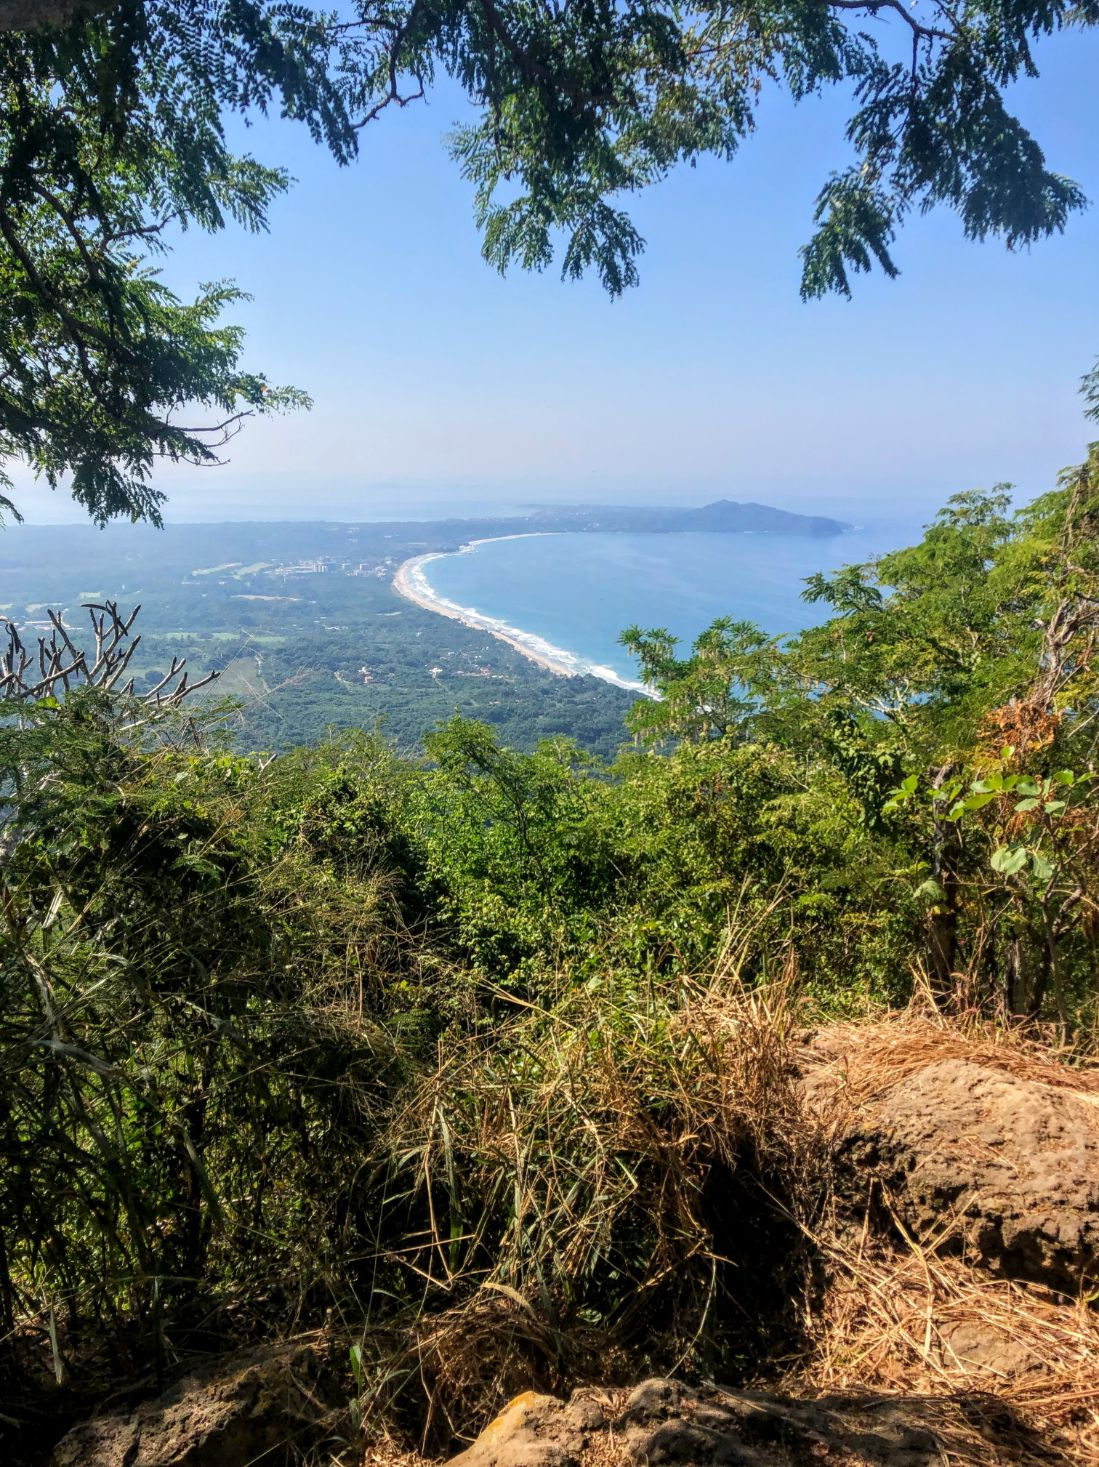 View of the coast from the top of Monkey Mountain